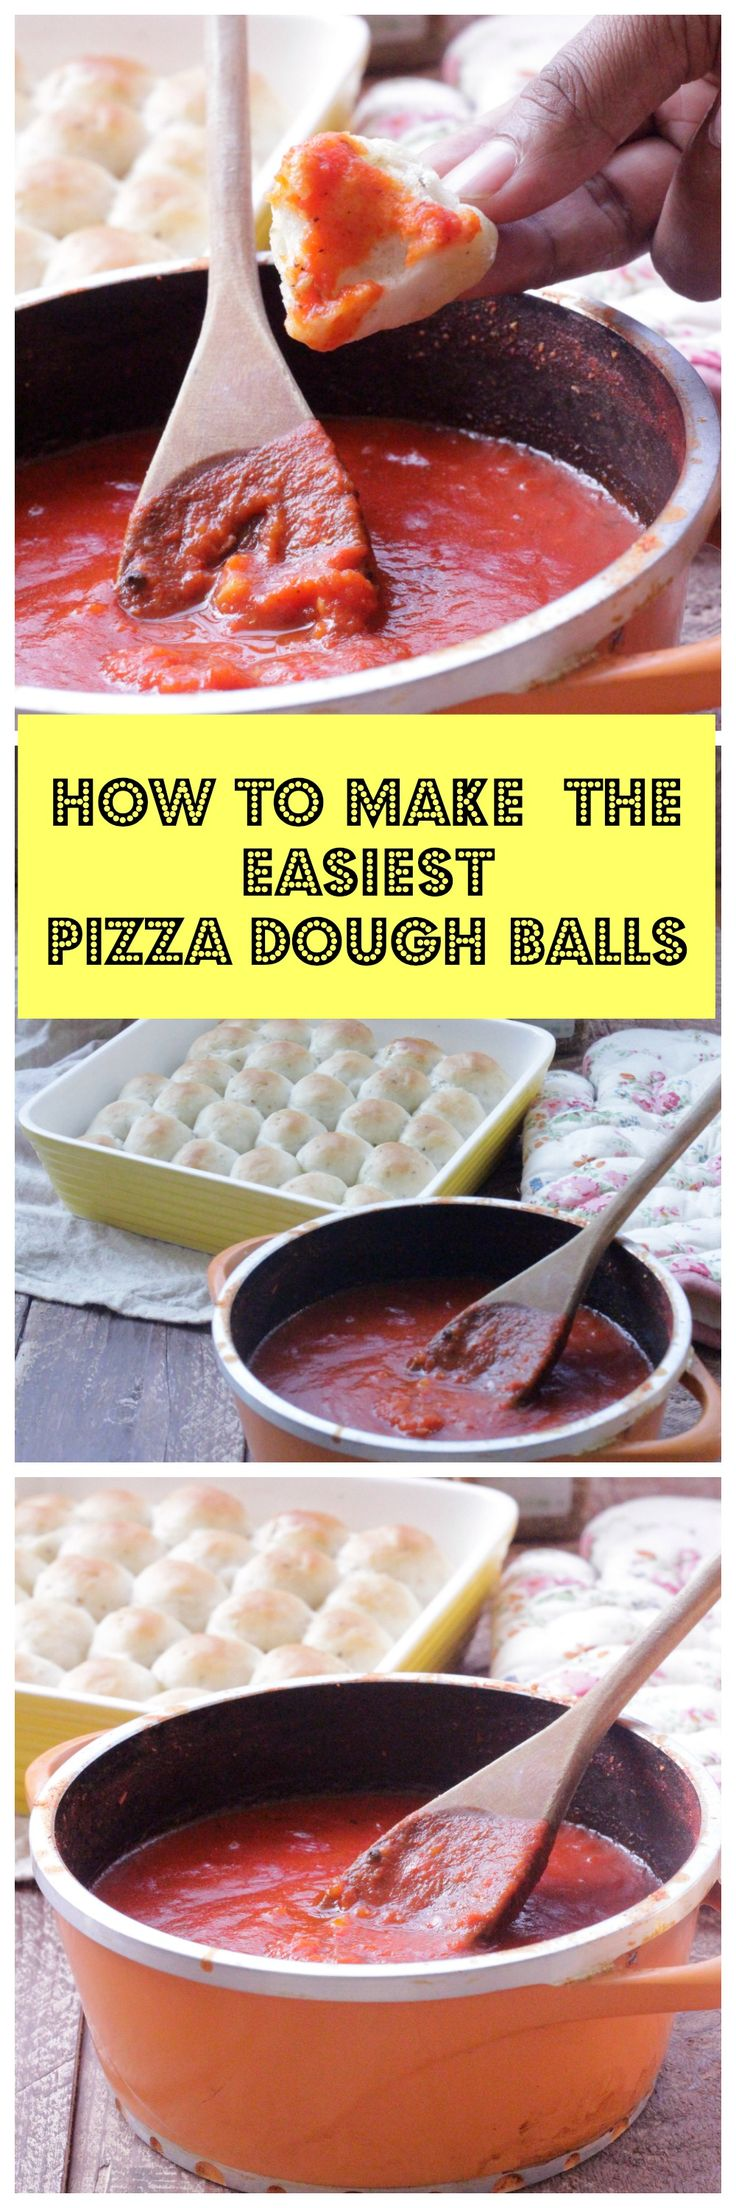 Soft fluffy, pizza doughballs- the ideal party snack for kids and adults. Serve it with some home made marinara or cheesy dip and these dough balls will win your guests.